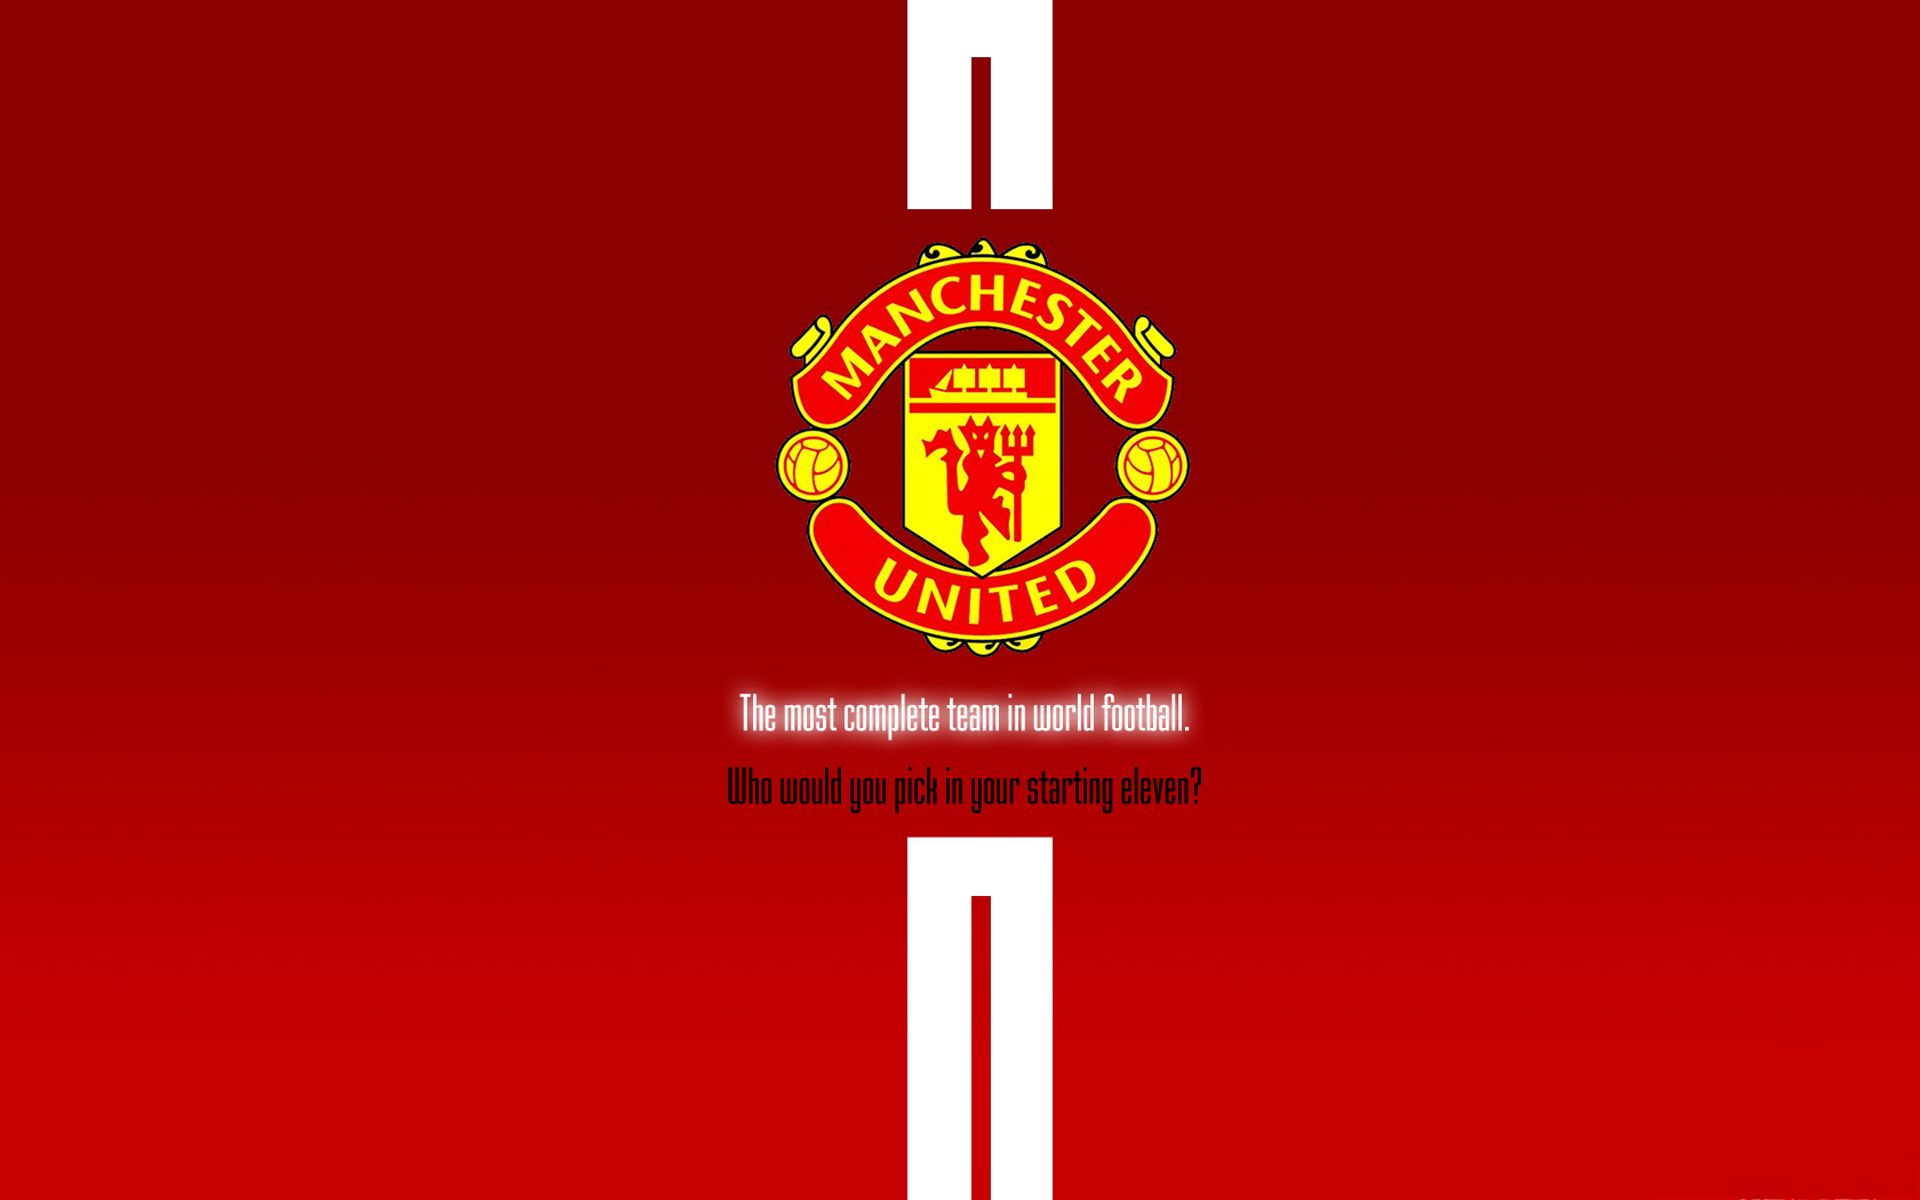 Get Best Manchester United Wallpapers Hd Wallpaper Manchester United Background